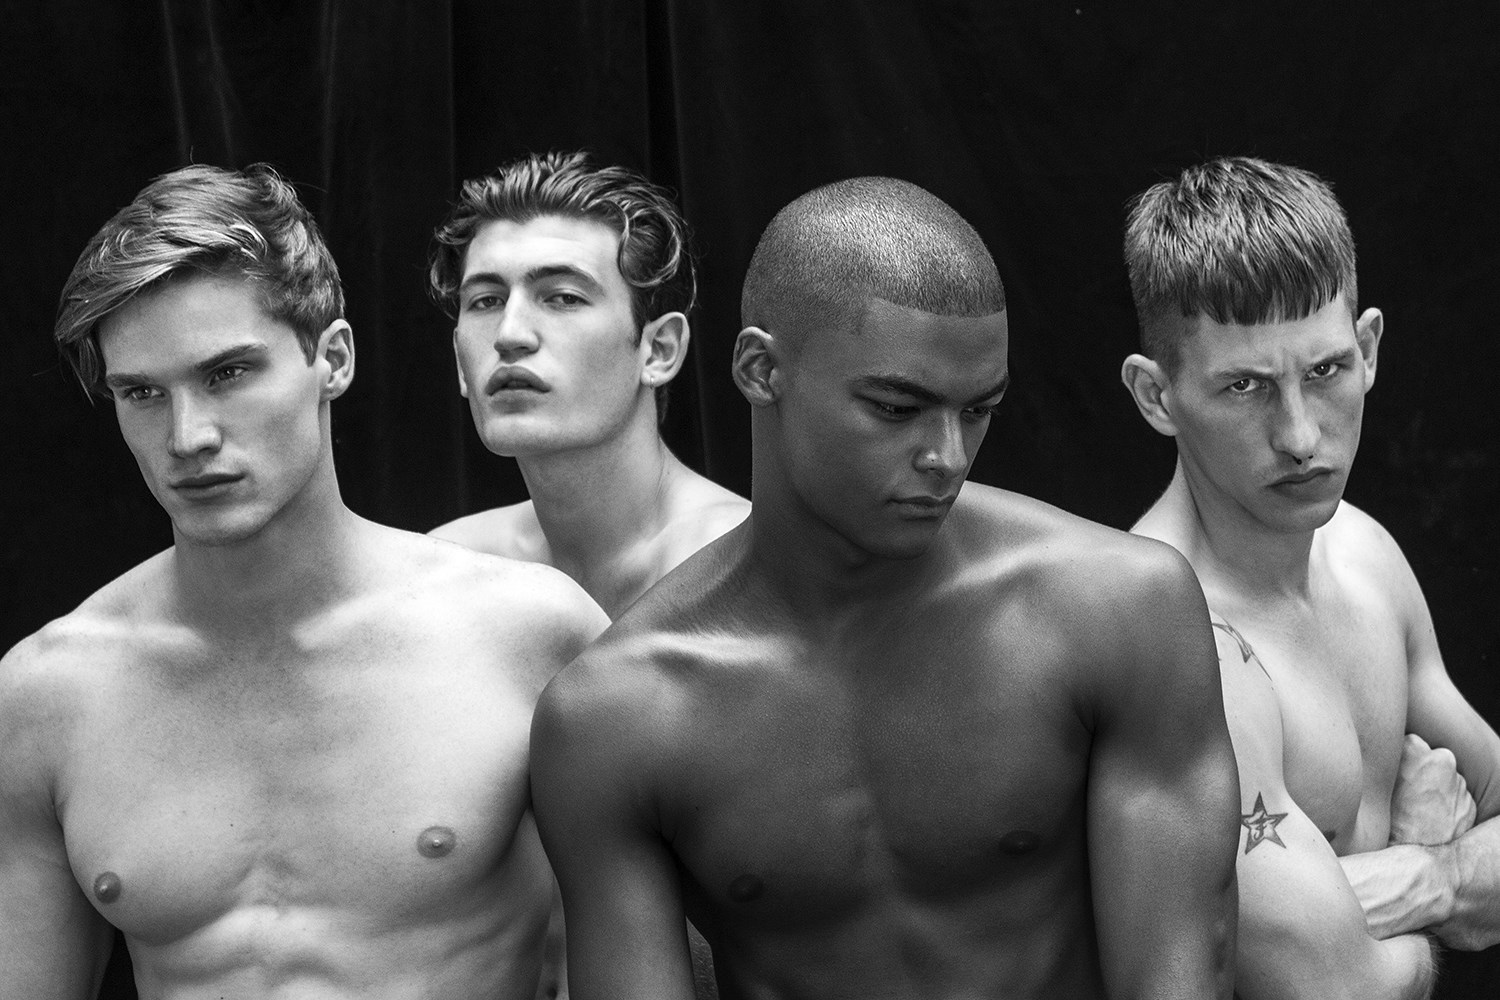 'Boys of Summer' Q Models by Gregory Prescott (1)